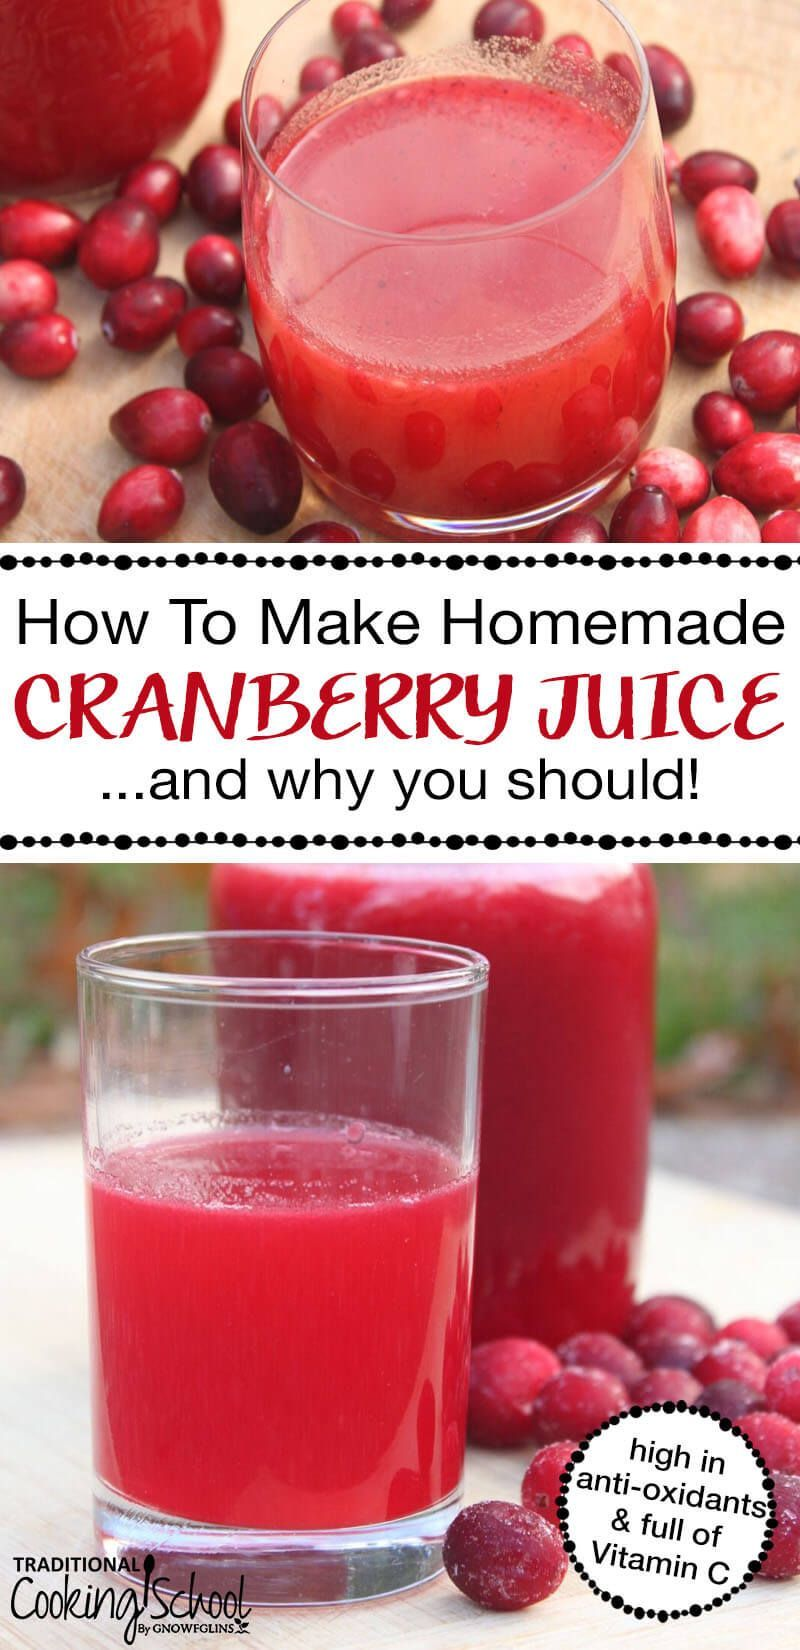 The Truth About Cranberry Juice Effectiveness For Pms Relief Cranberry Juice Benefits Cranberry Benefits Cranberry Juice